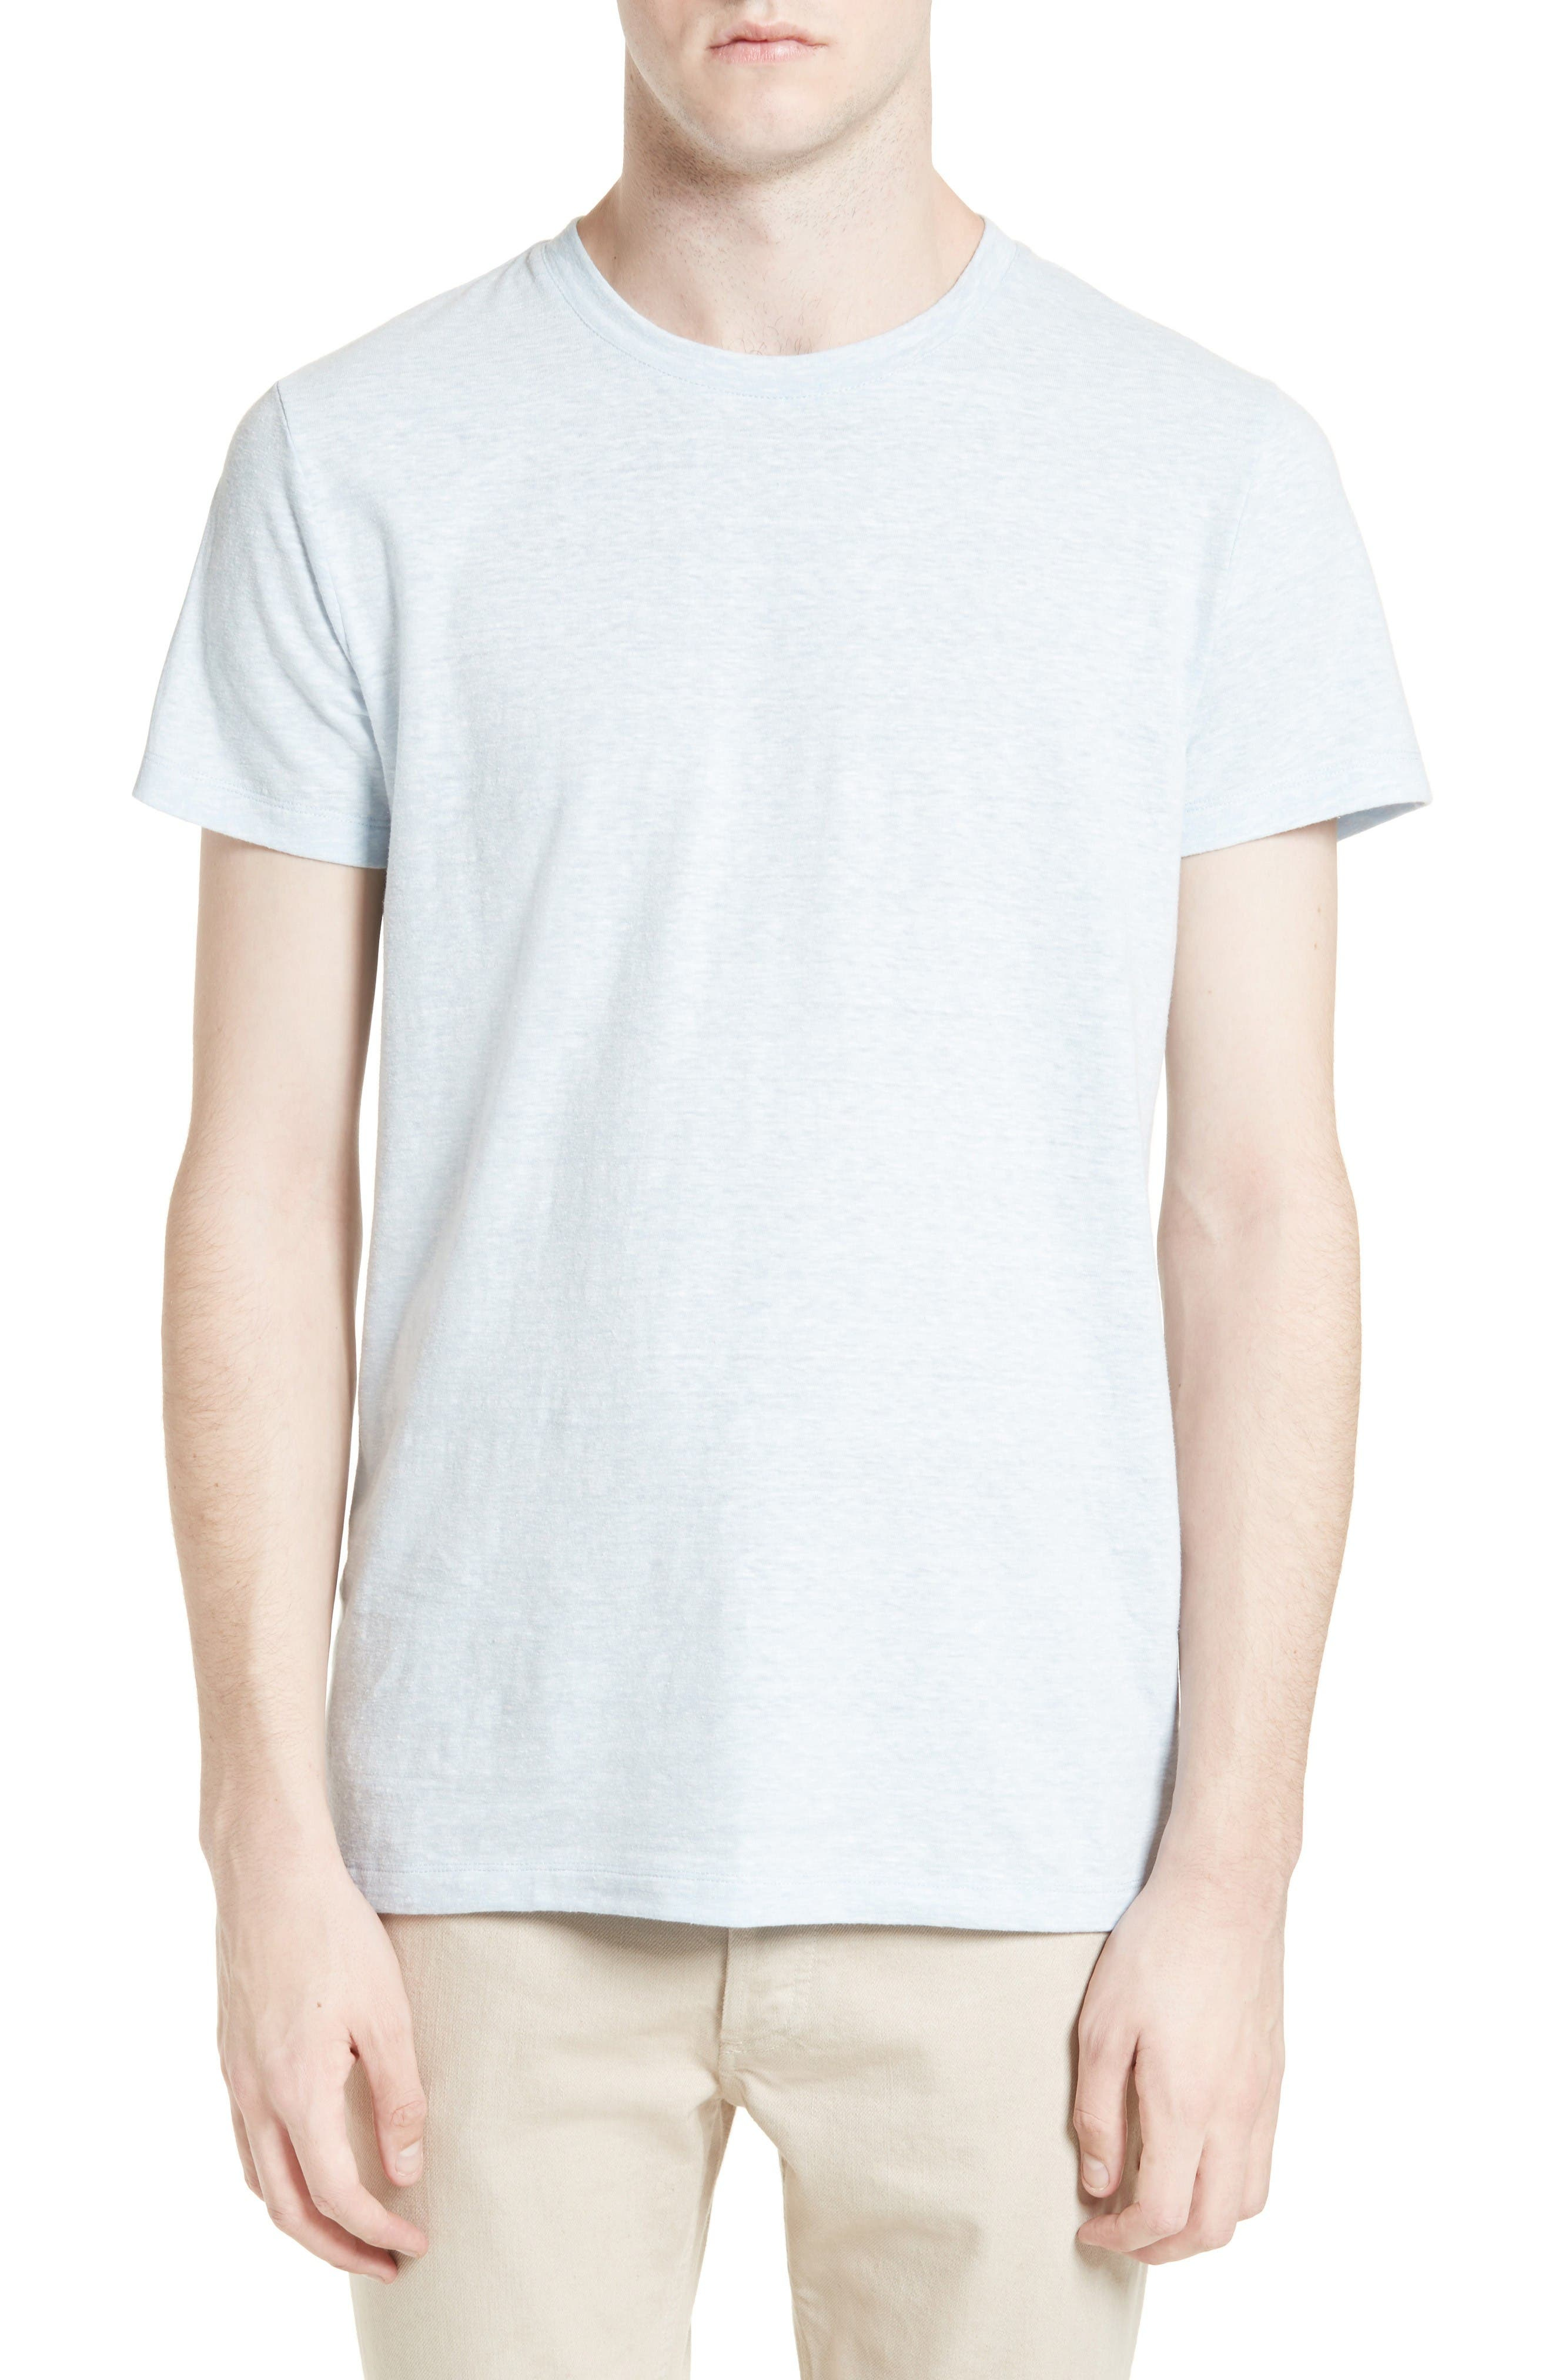 Alternate Image 1 Selected - A.P.C. Jimmy T-Shirt